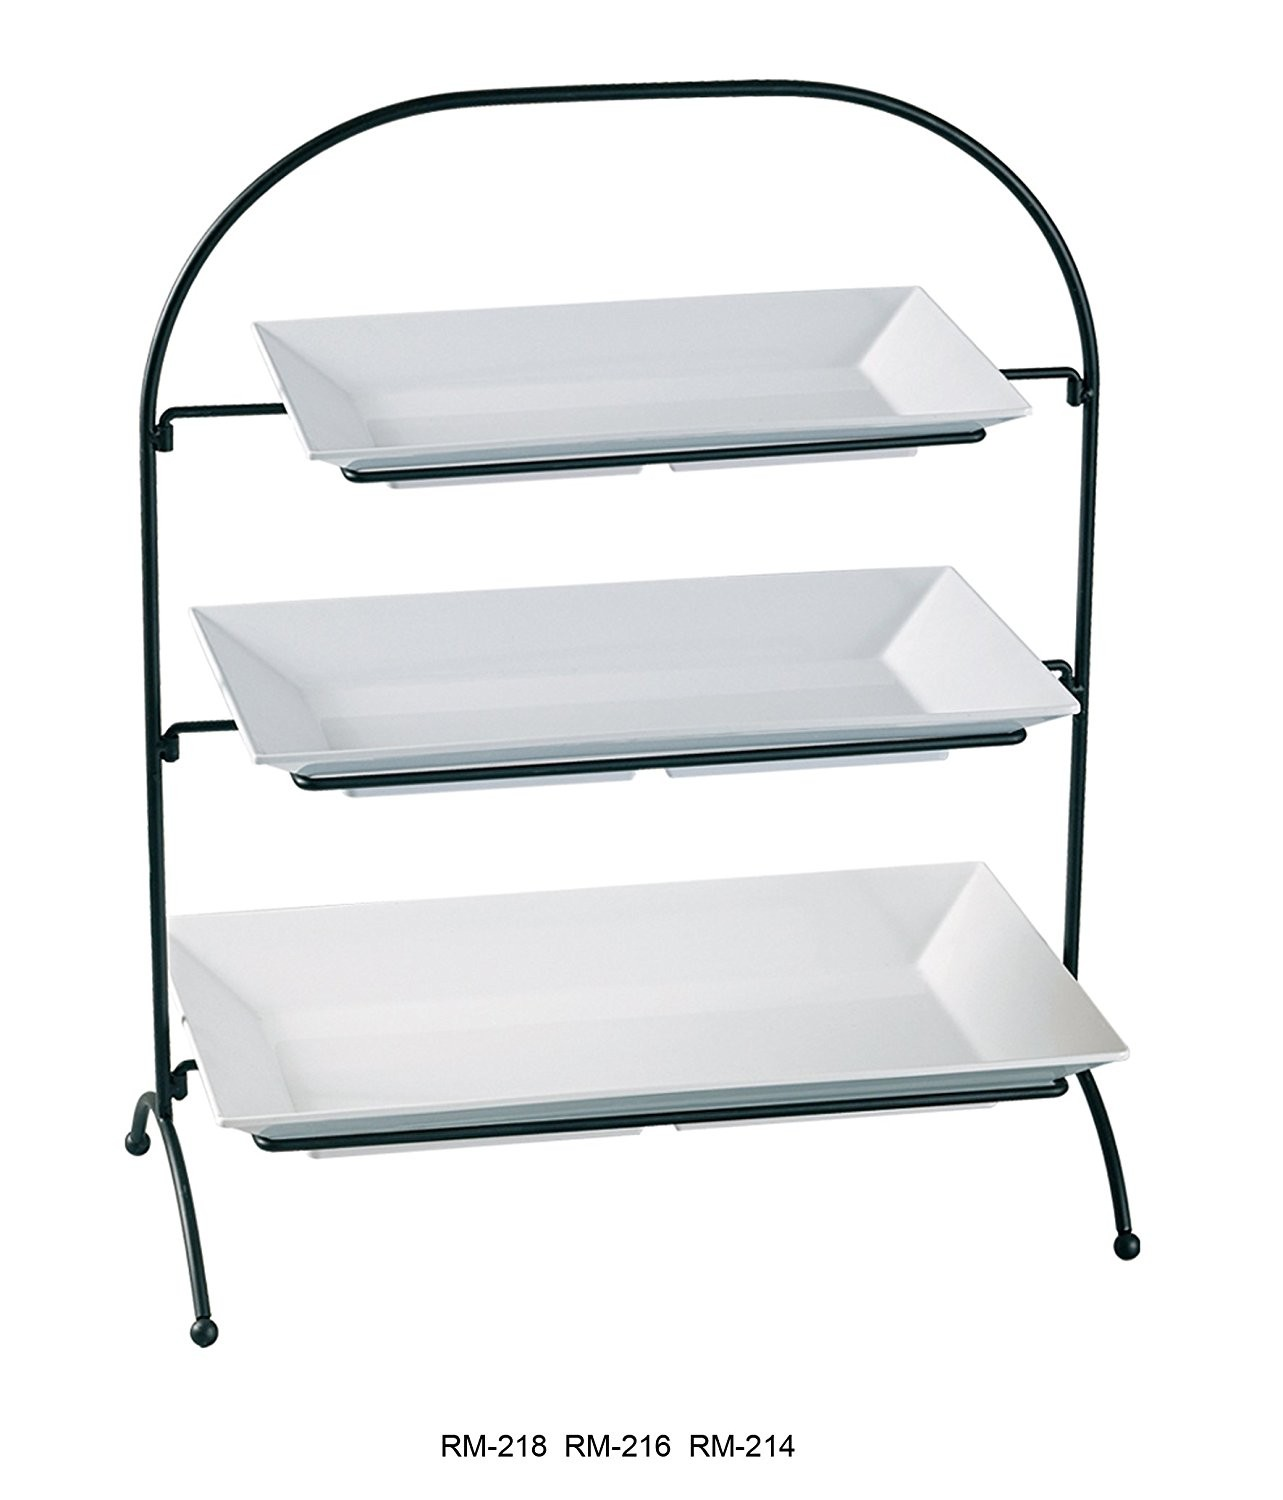 "Yanco st-103bk Rome 3 Tier Black Display Stand 22 1/2"" x 19"" x 9 1/2""for RM-212/214/218"